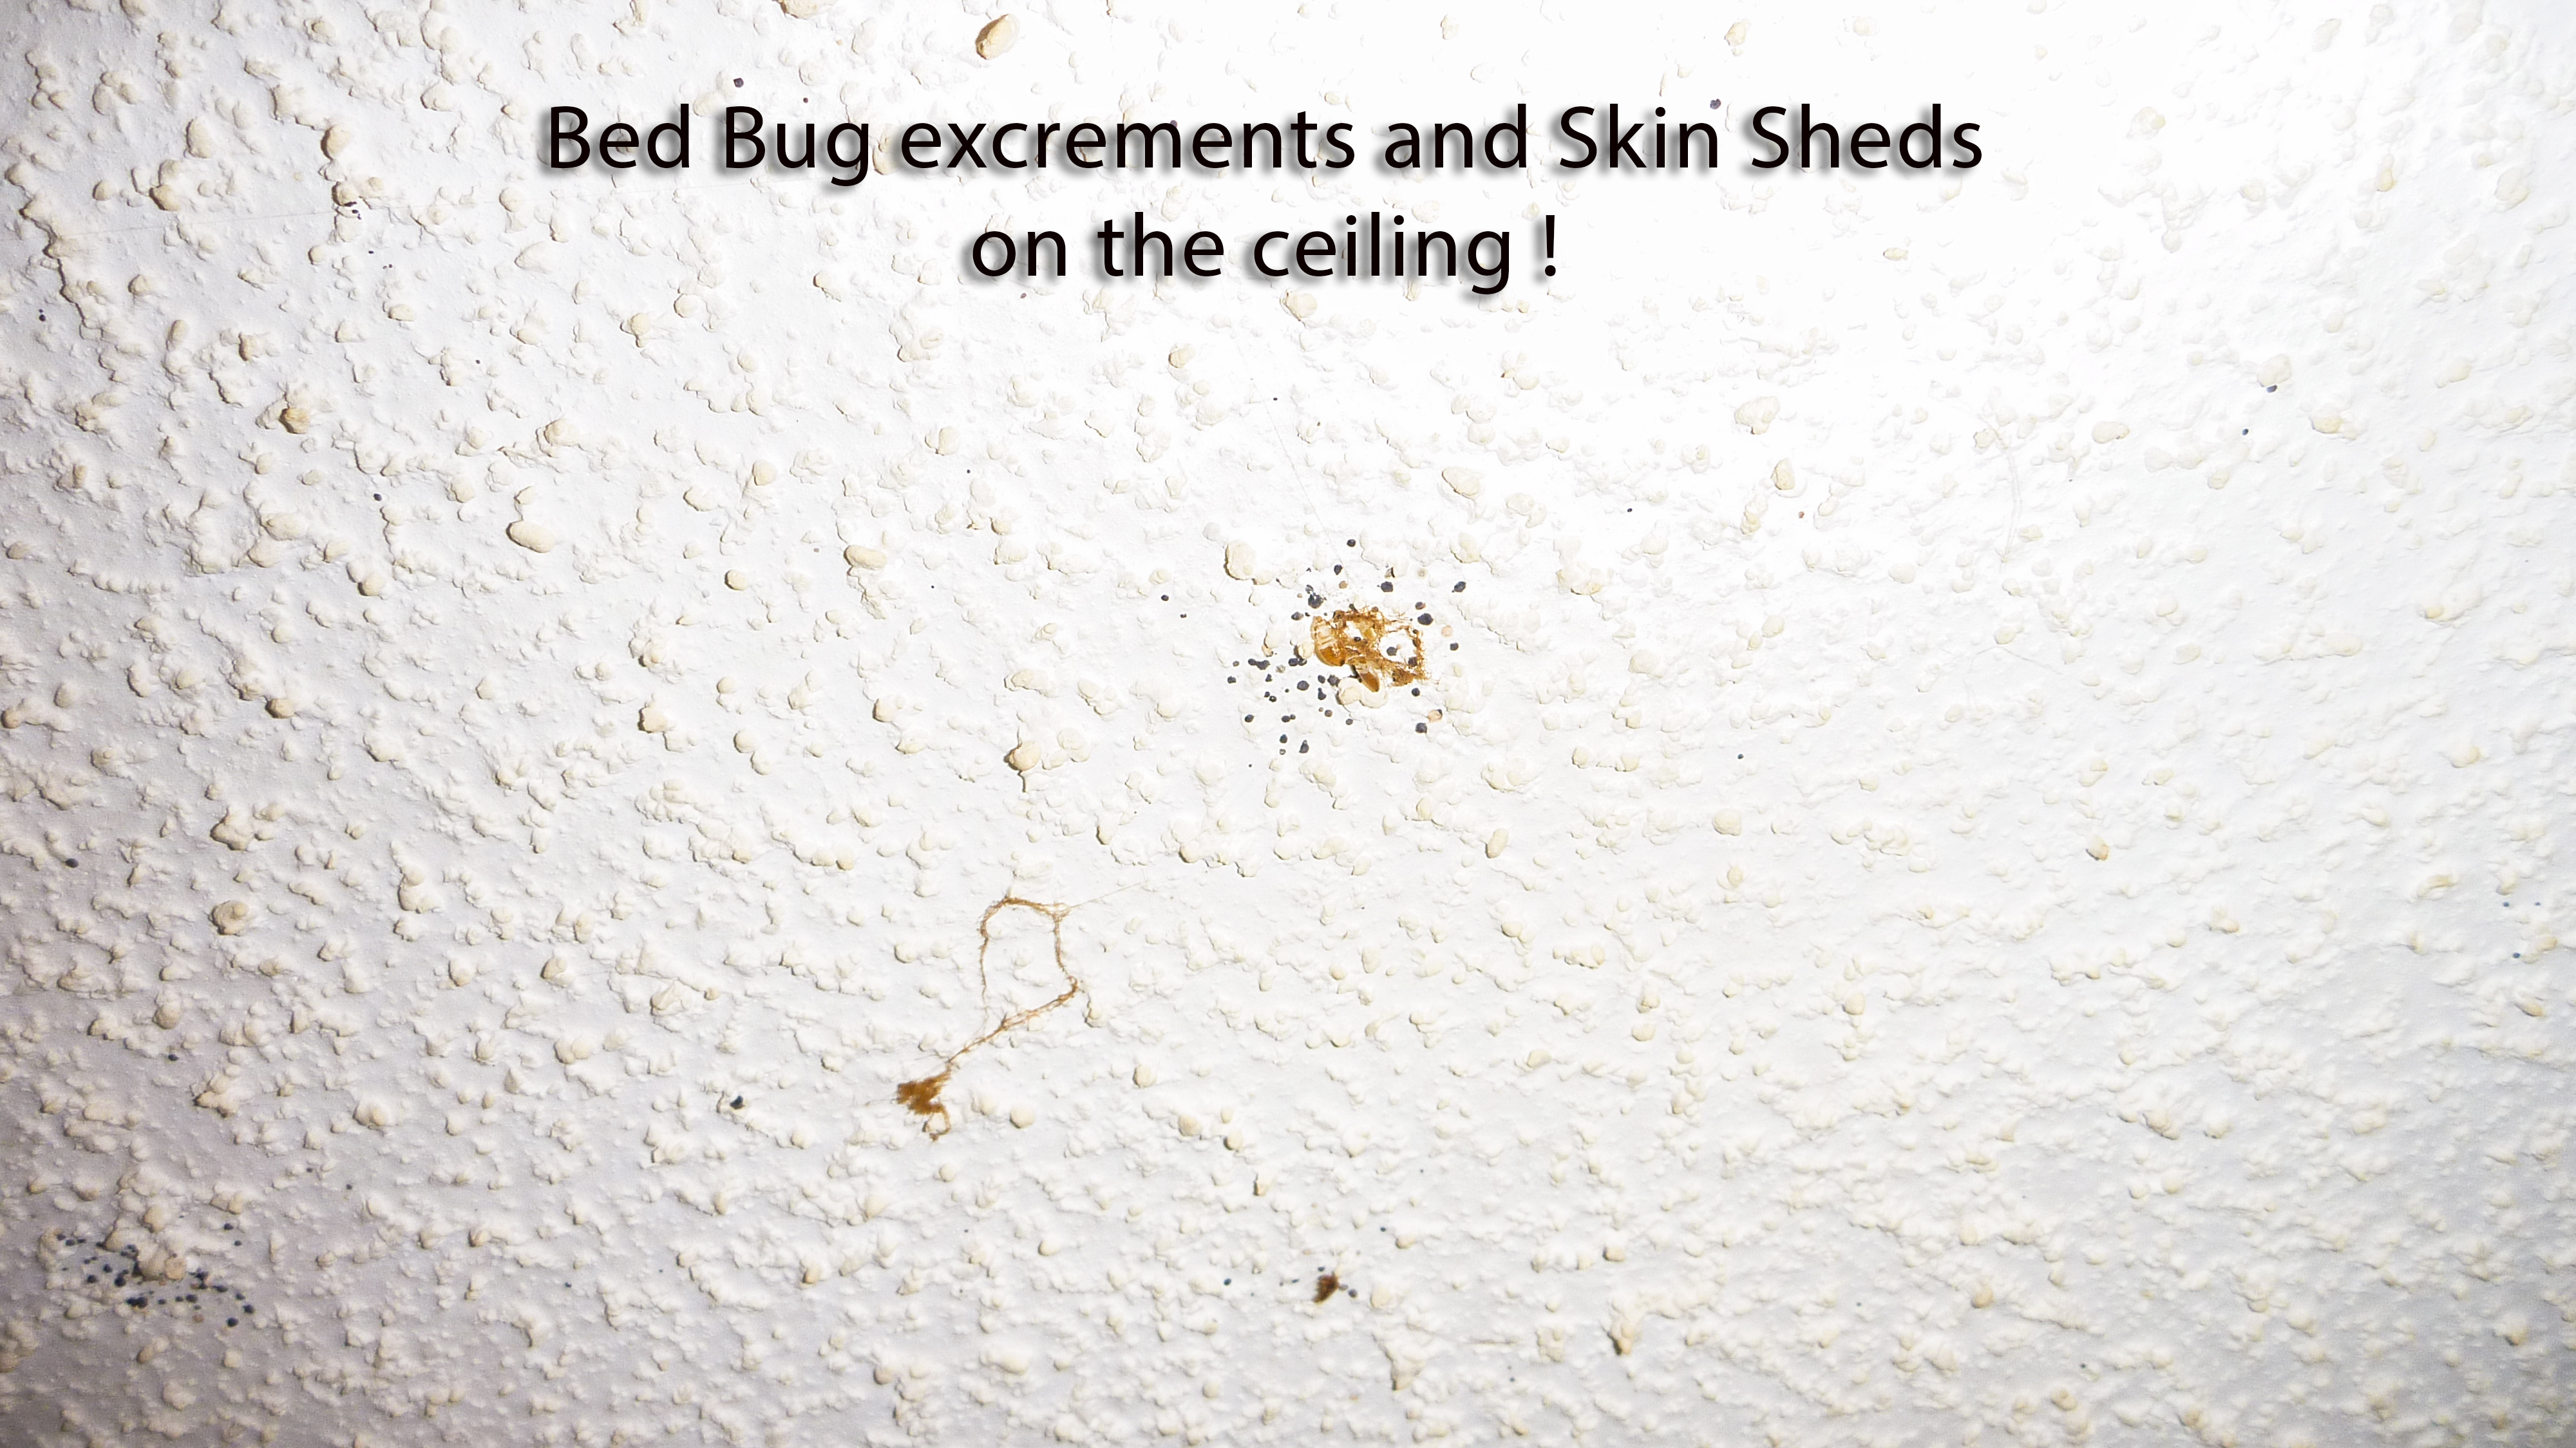 Bed Bugs Skin Sheds And Excrements On The Ceiling: